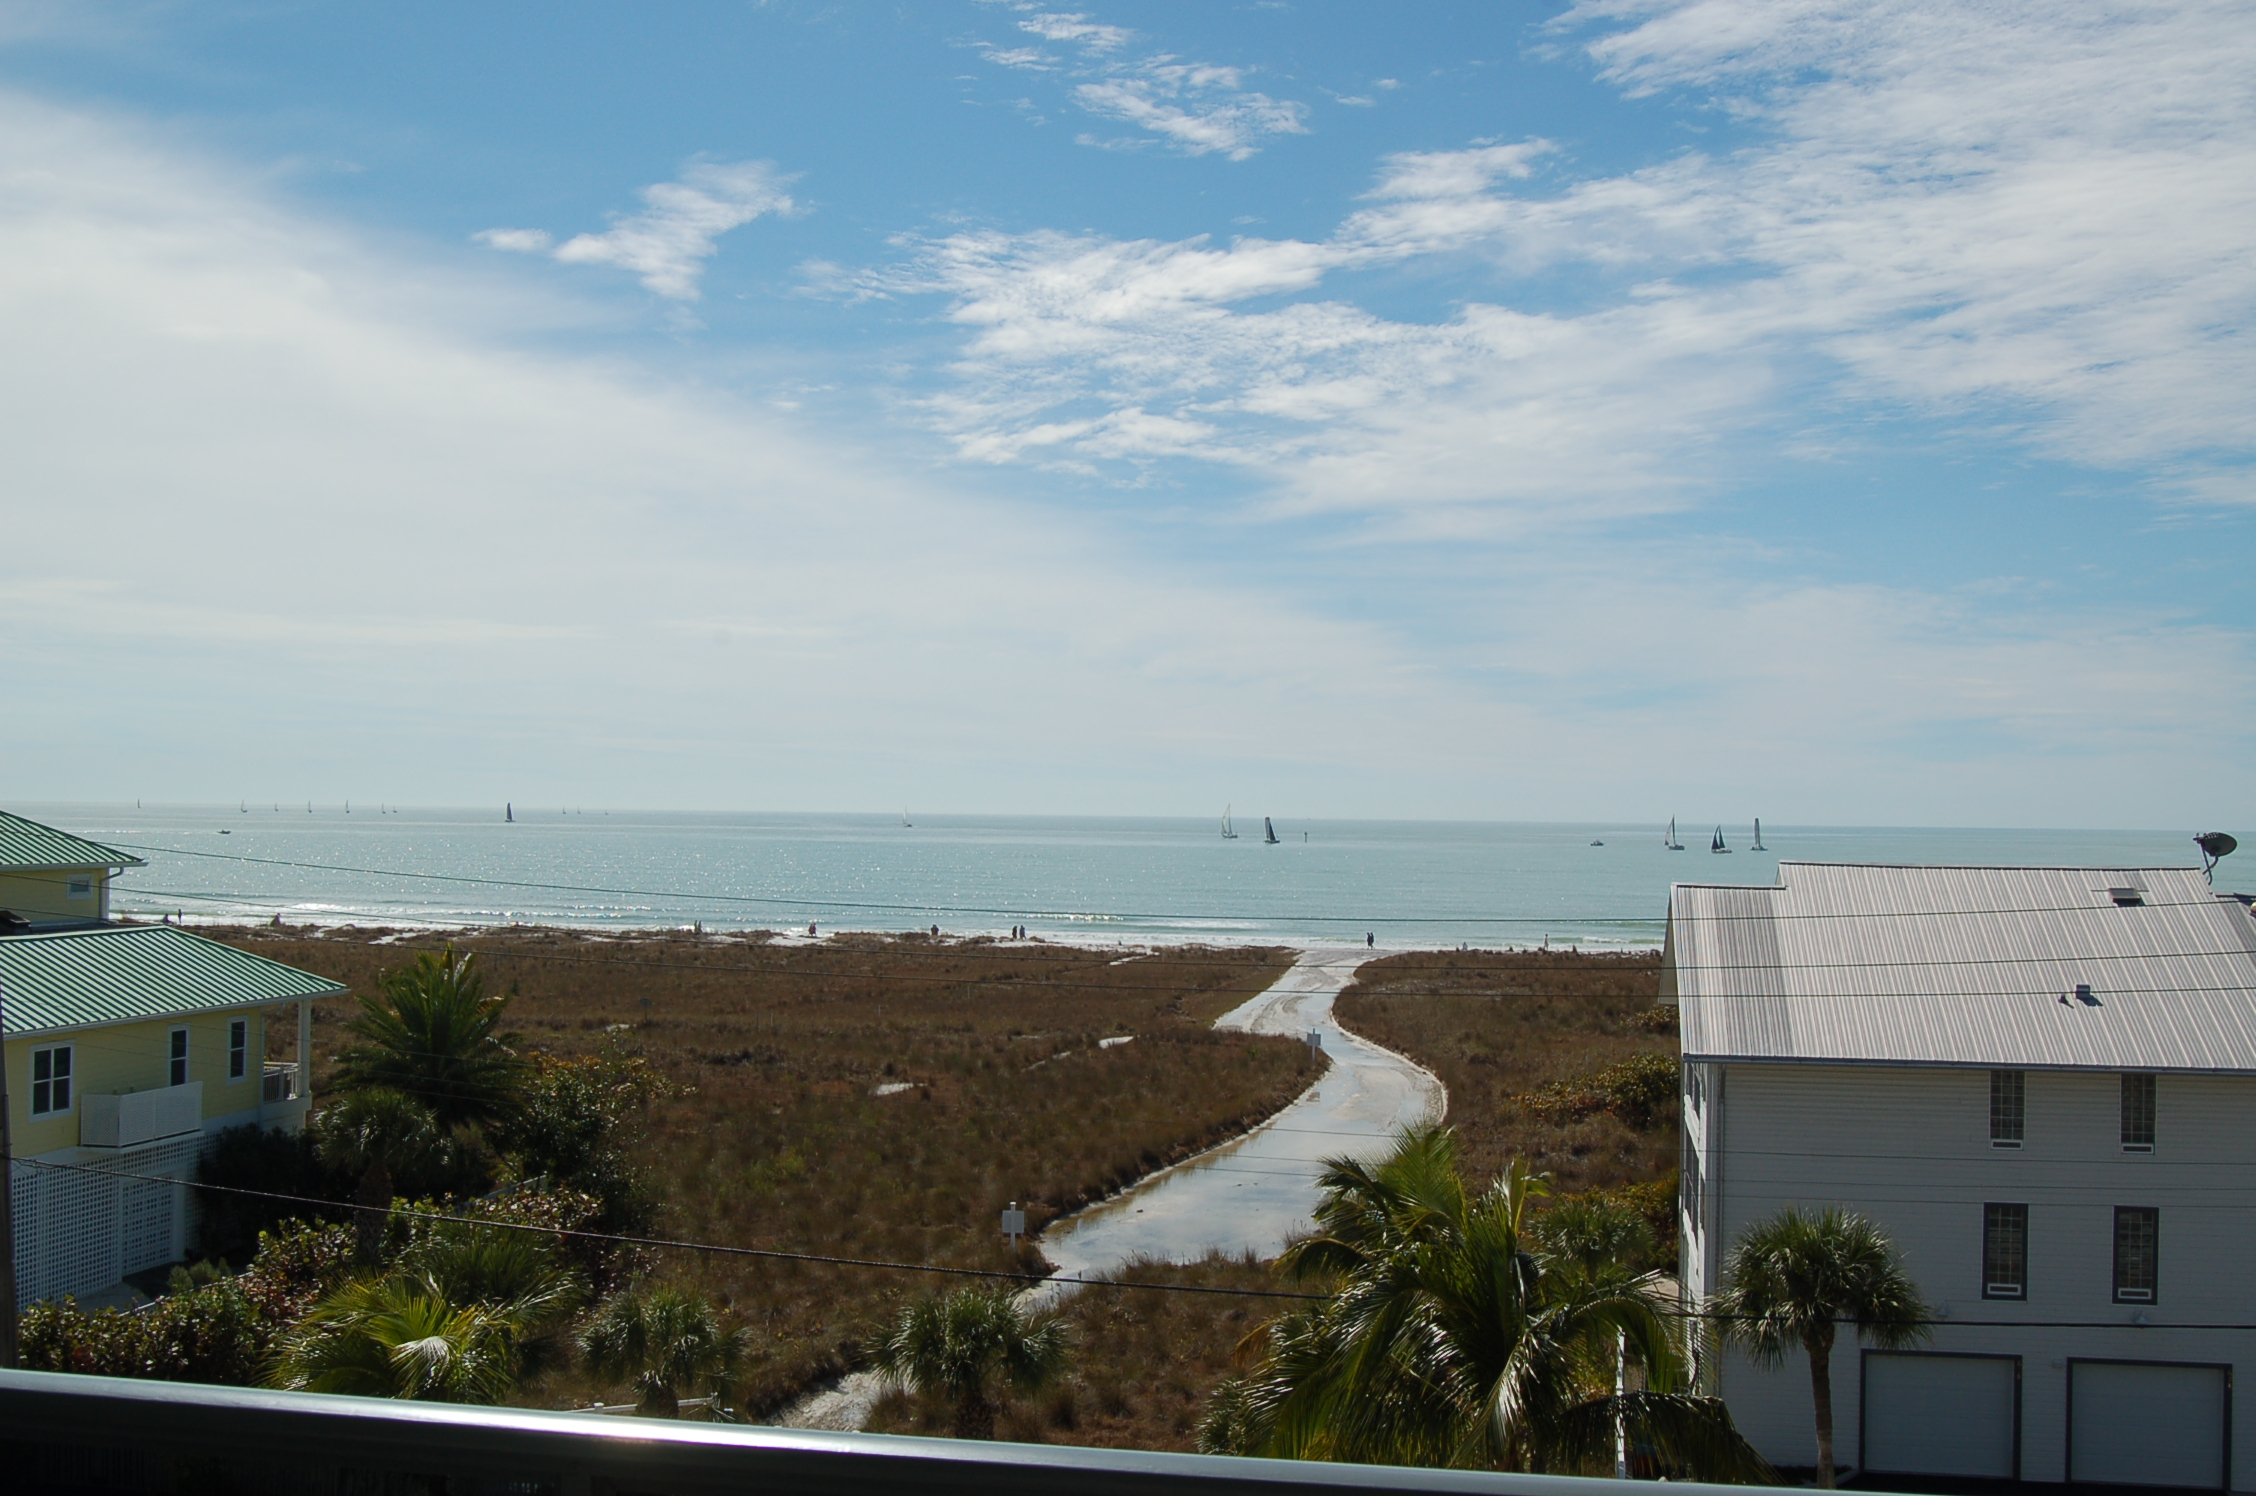 View from the lanai/balcony